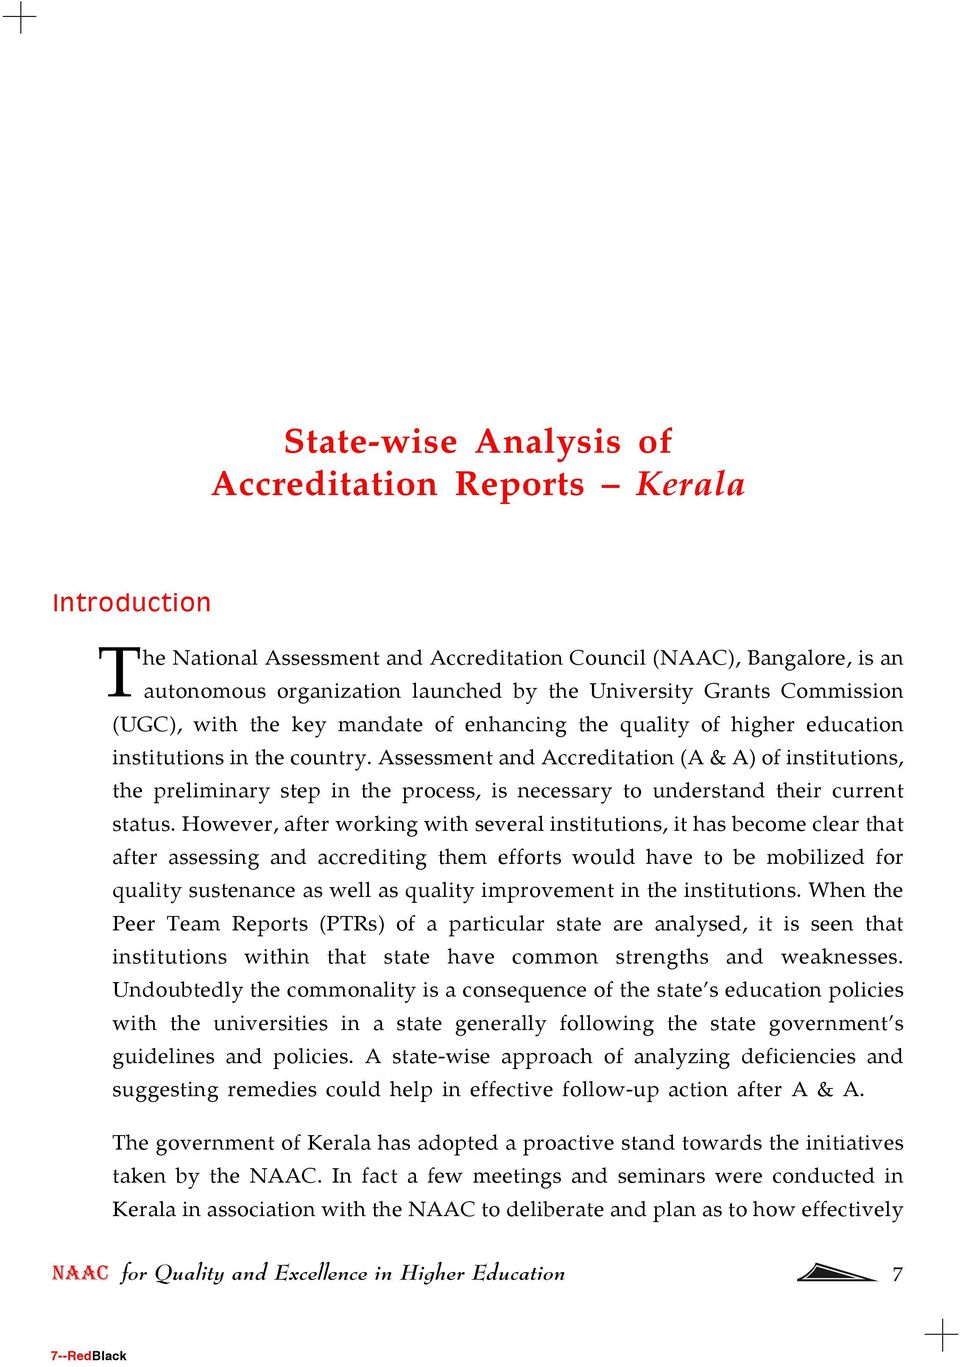 Assessment and Accreditation (A & A) of institutions, the preliminary step in the process, is necessary to understand their current status.